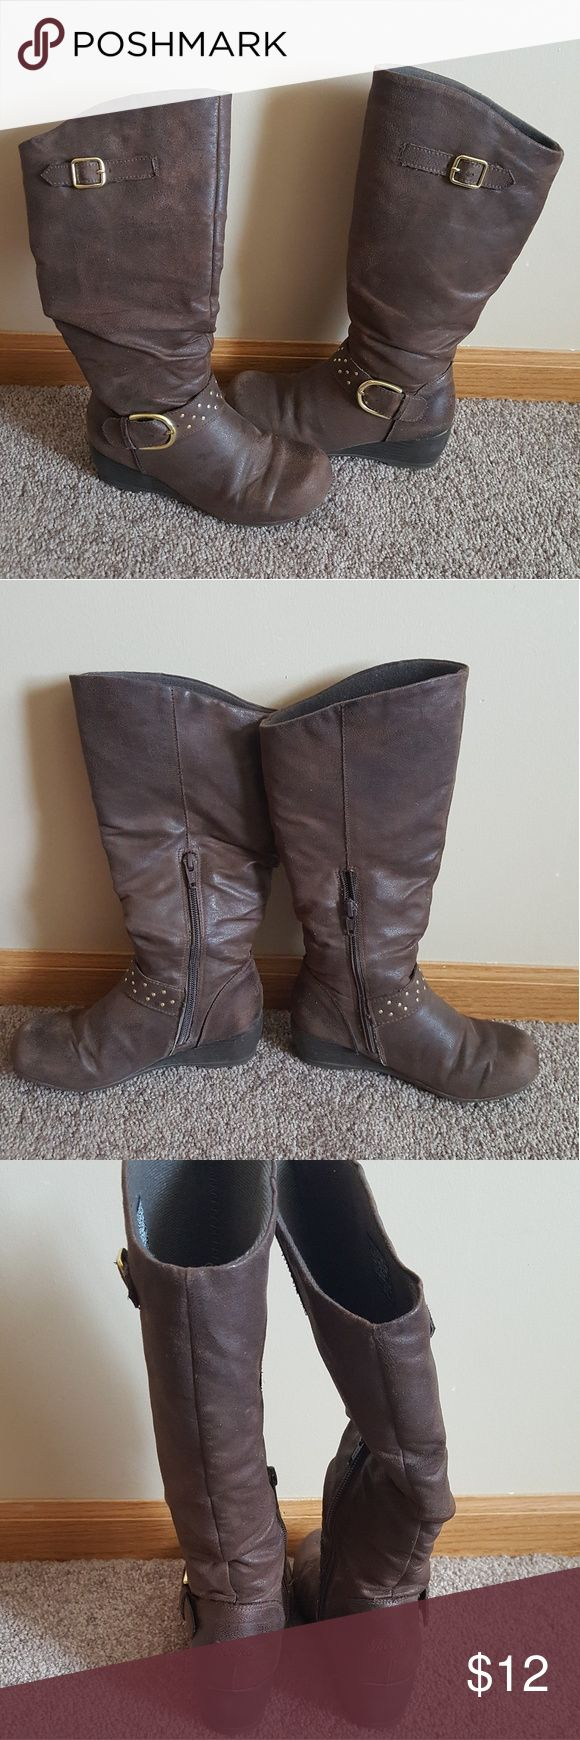 skechers boots for girls used there are signs of wear but still in good condition bundle to save Skechers Shoes Boots